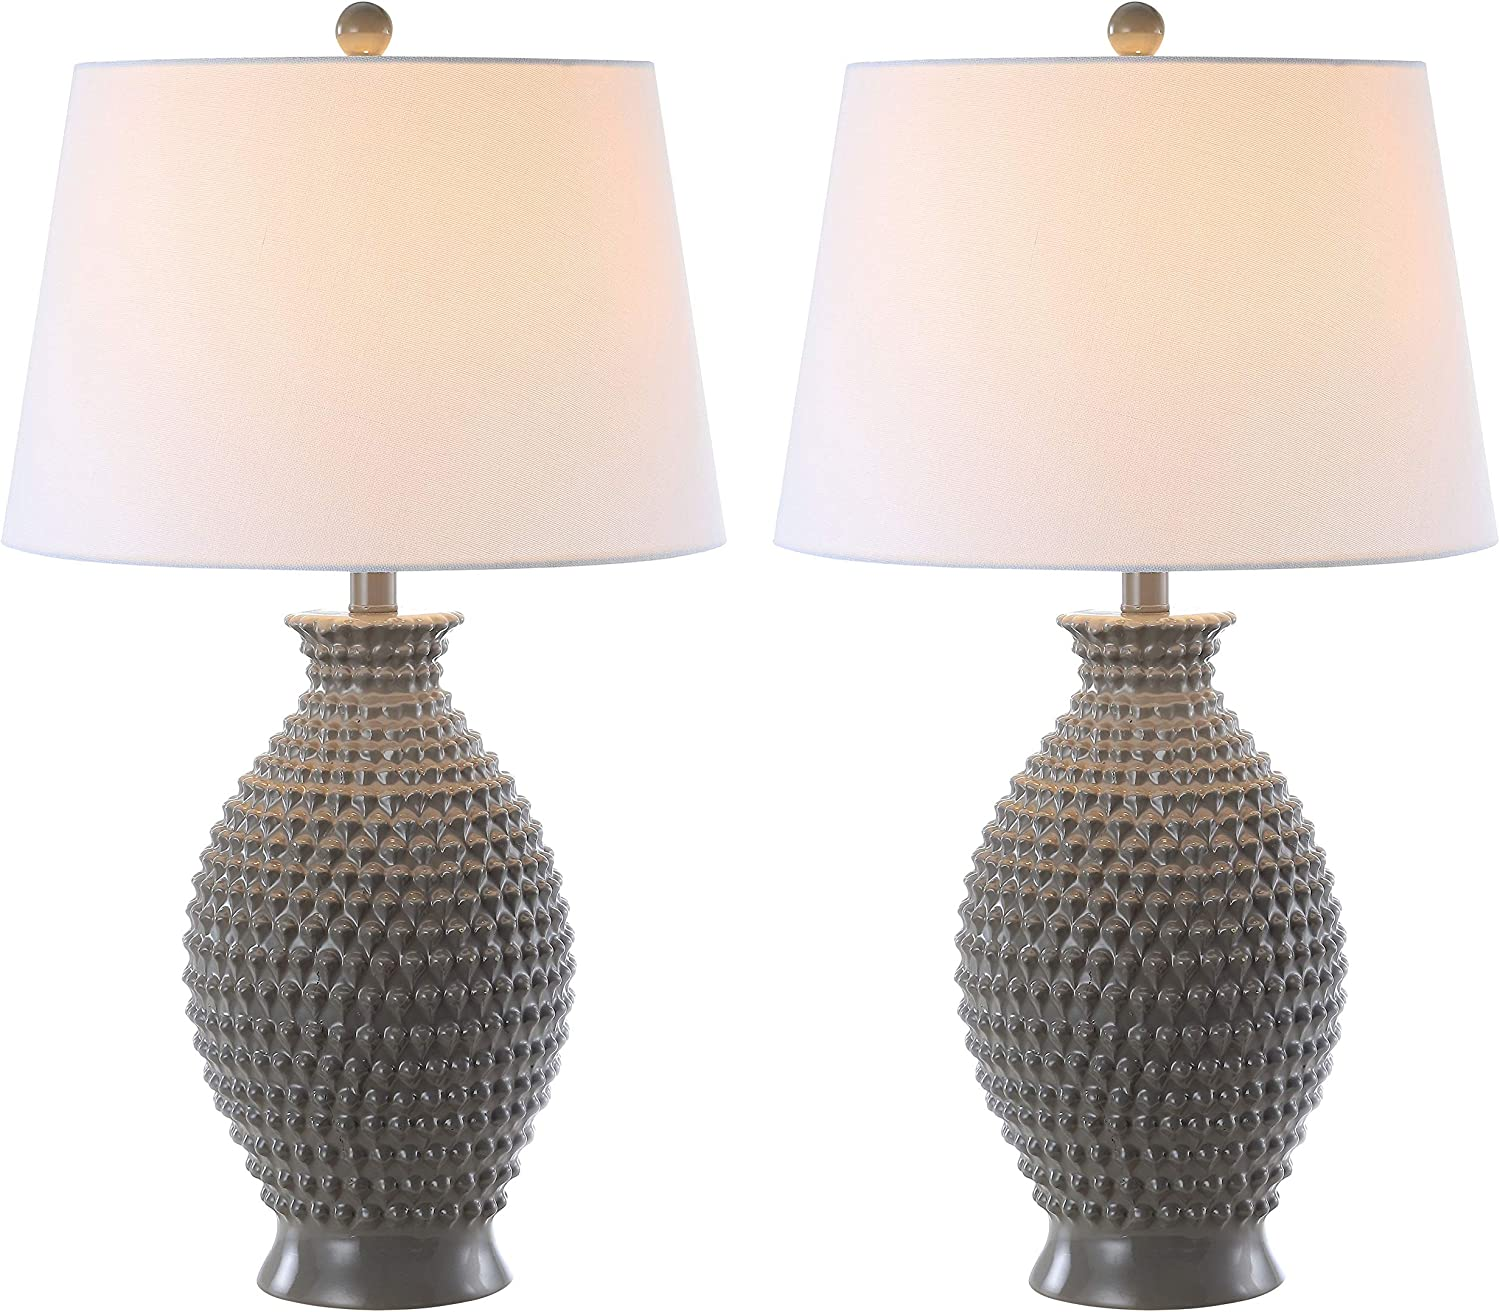 Safavieh Tbl4125a Set2 Lighting Collection Rosten Grey 27 Inch Table Lamp H